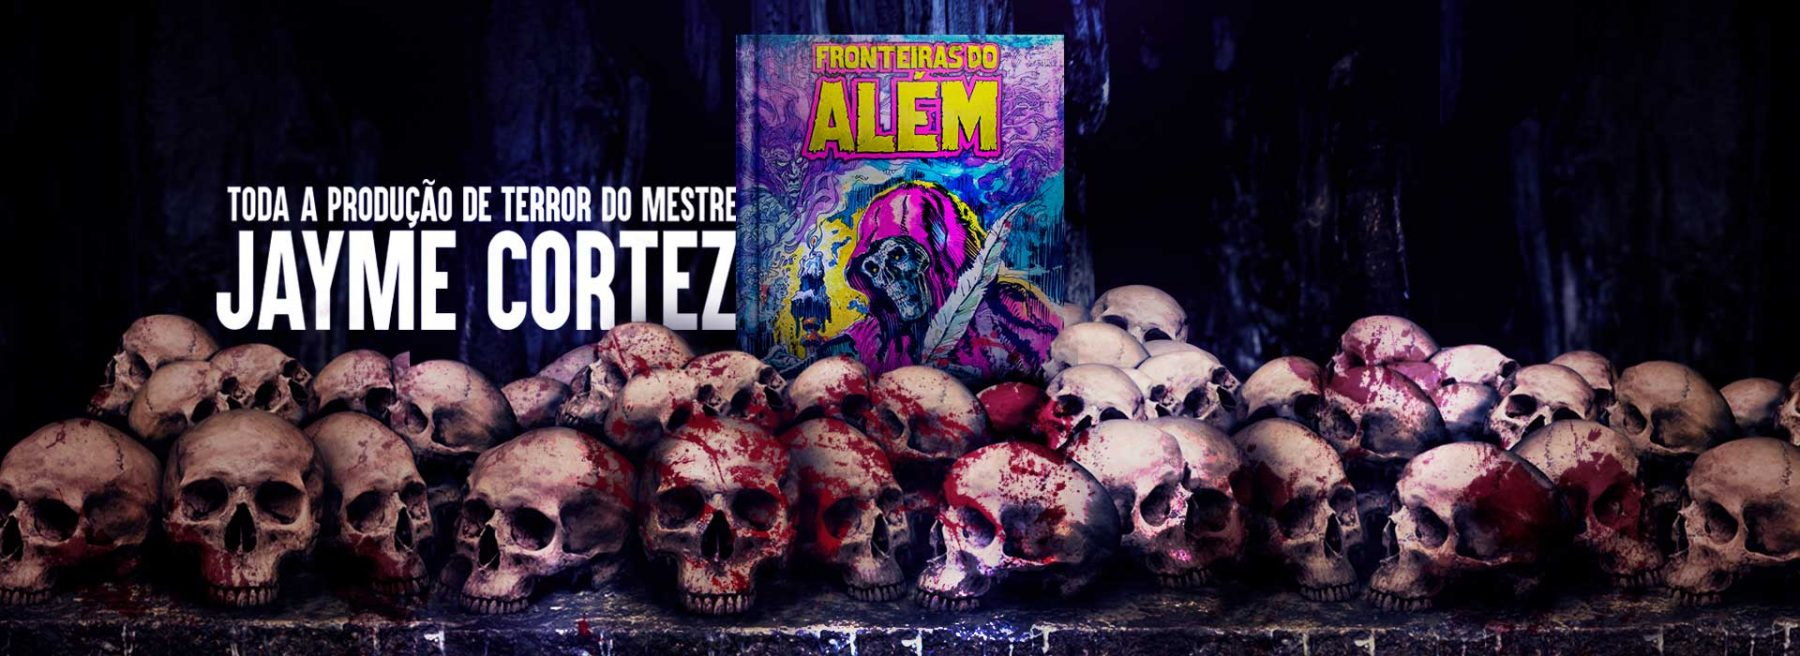 frotnteira do alem banner slide